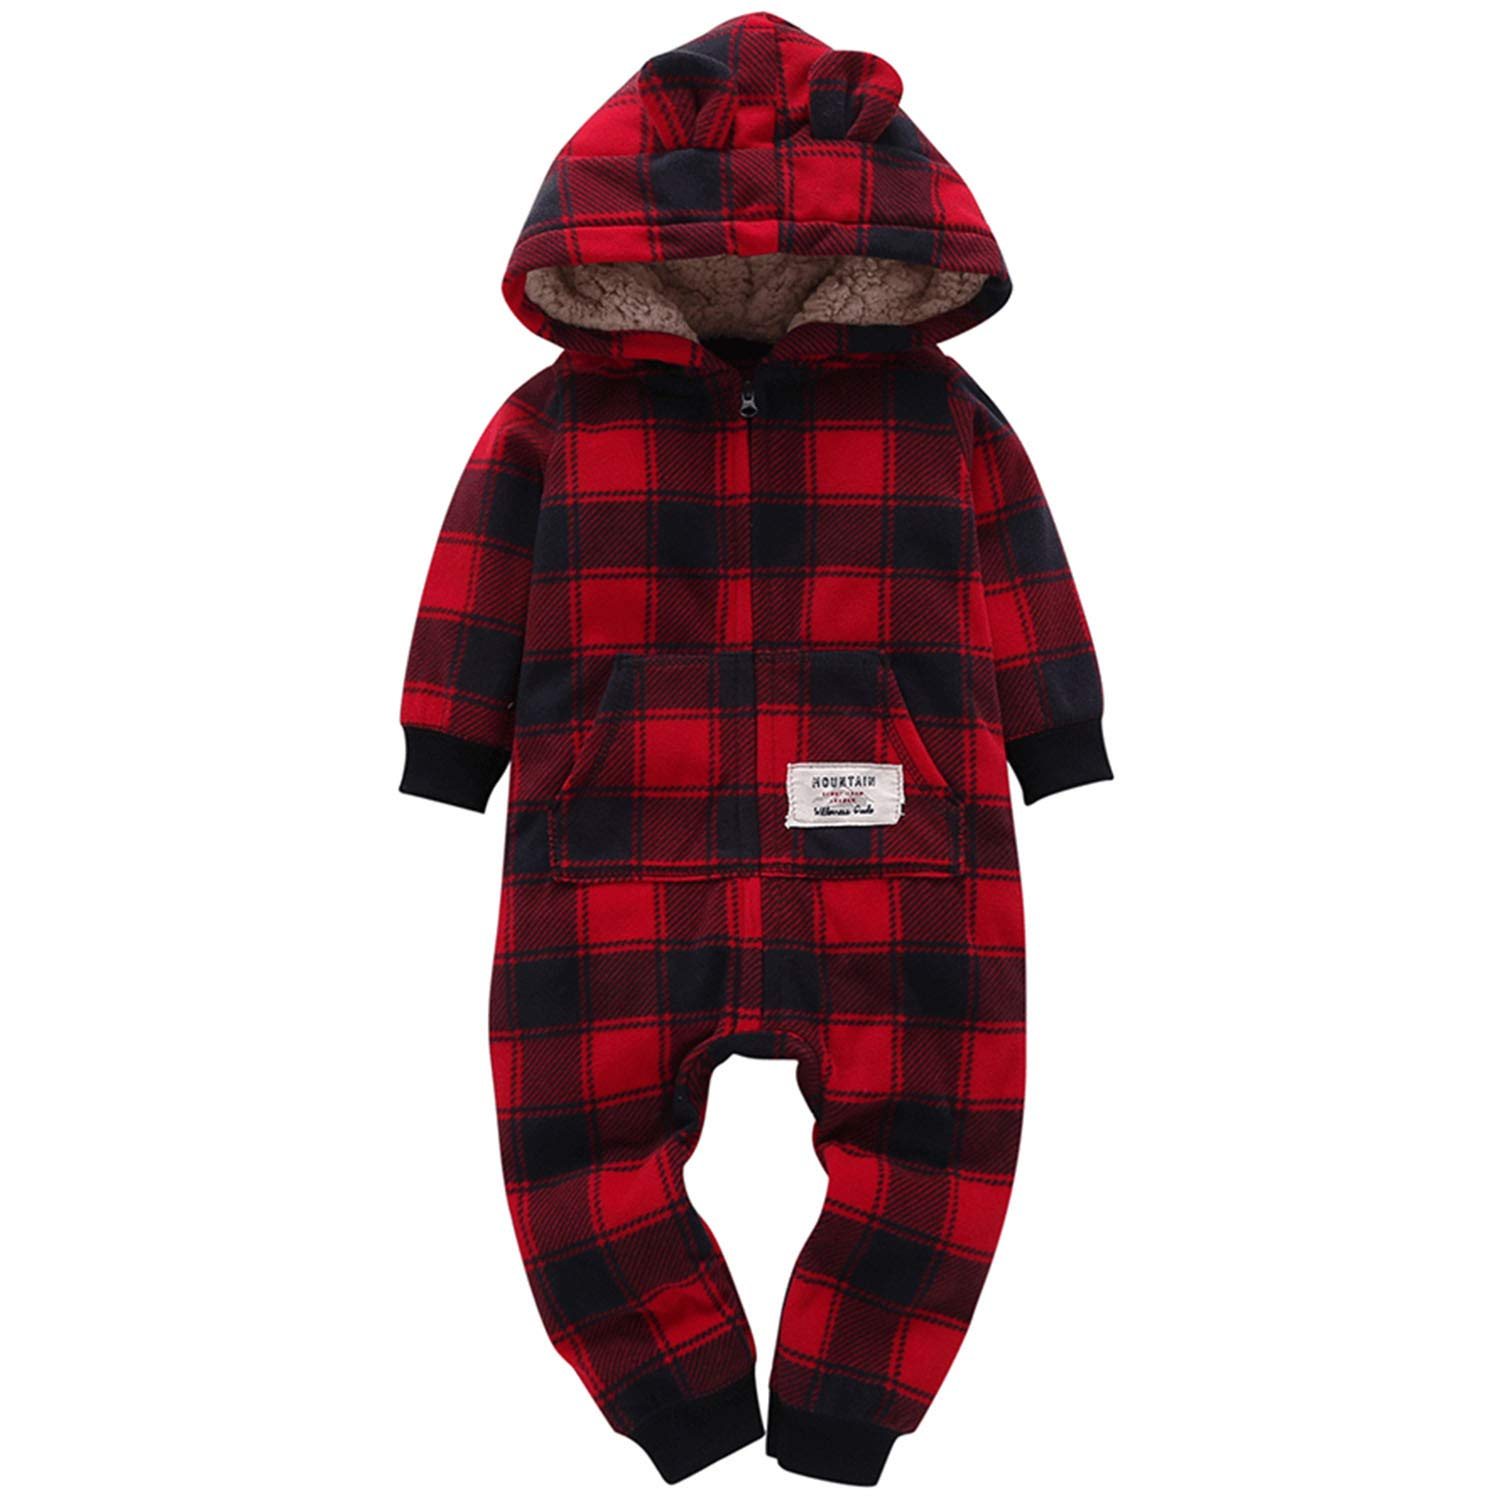 Baby Boys Girls Christmas Outfit Long Sleeved Zip-up Hooded Romper Playsuit Jumpsuit Winter Clothes Set for Infant